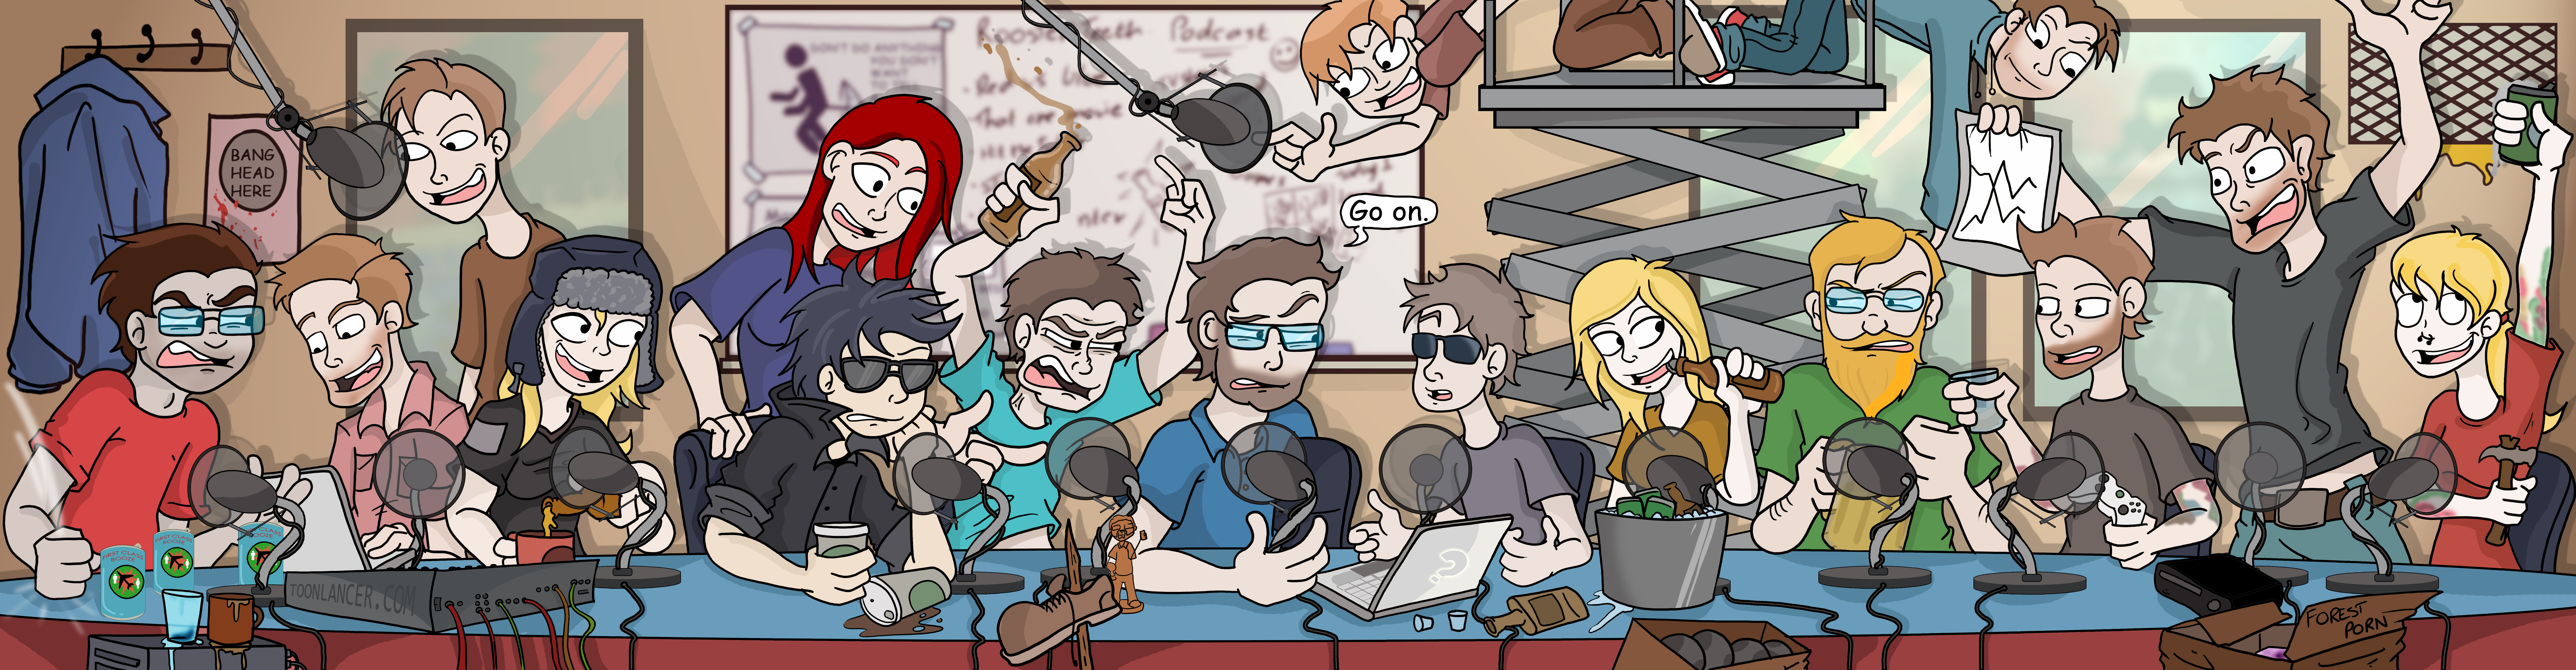 Rooster Teeth Podcast cast by Toonlancer 12329x3208